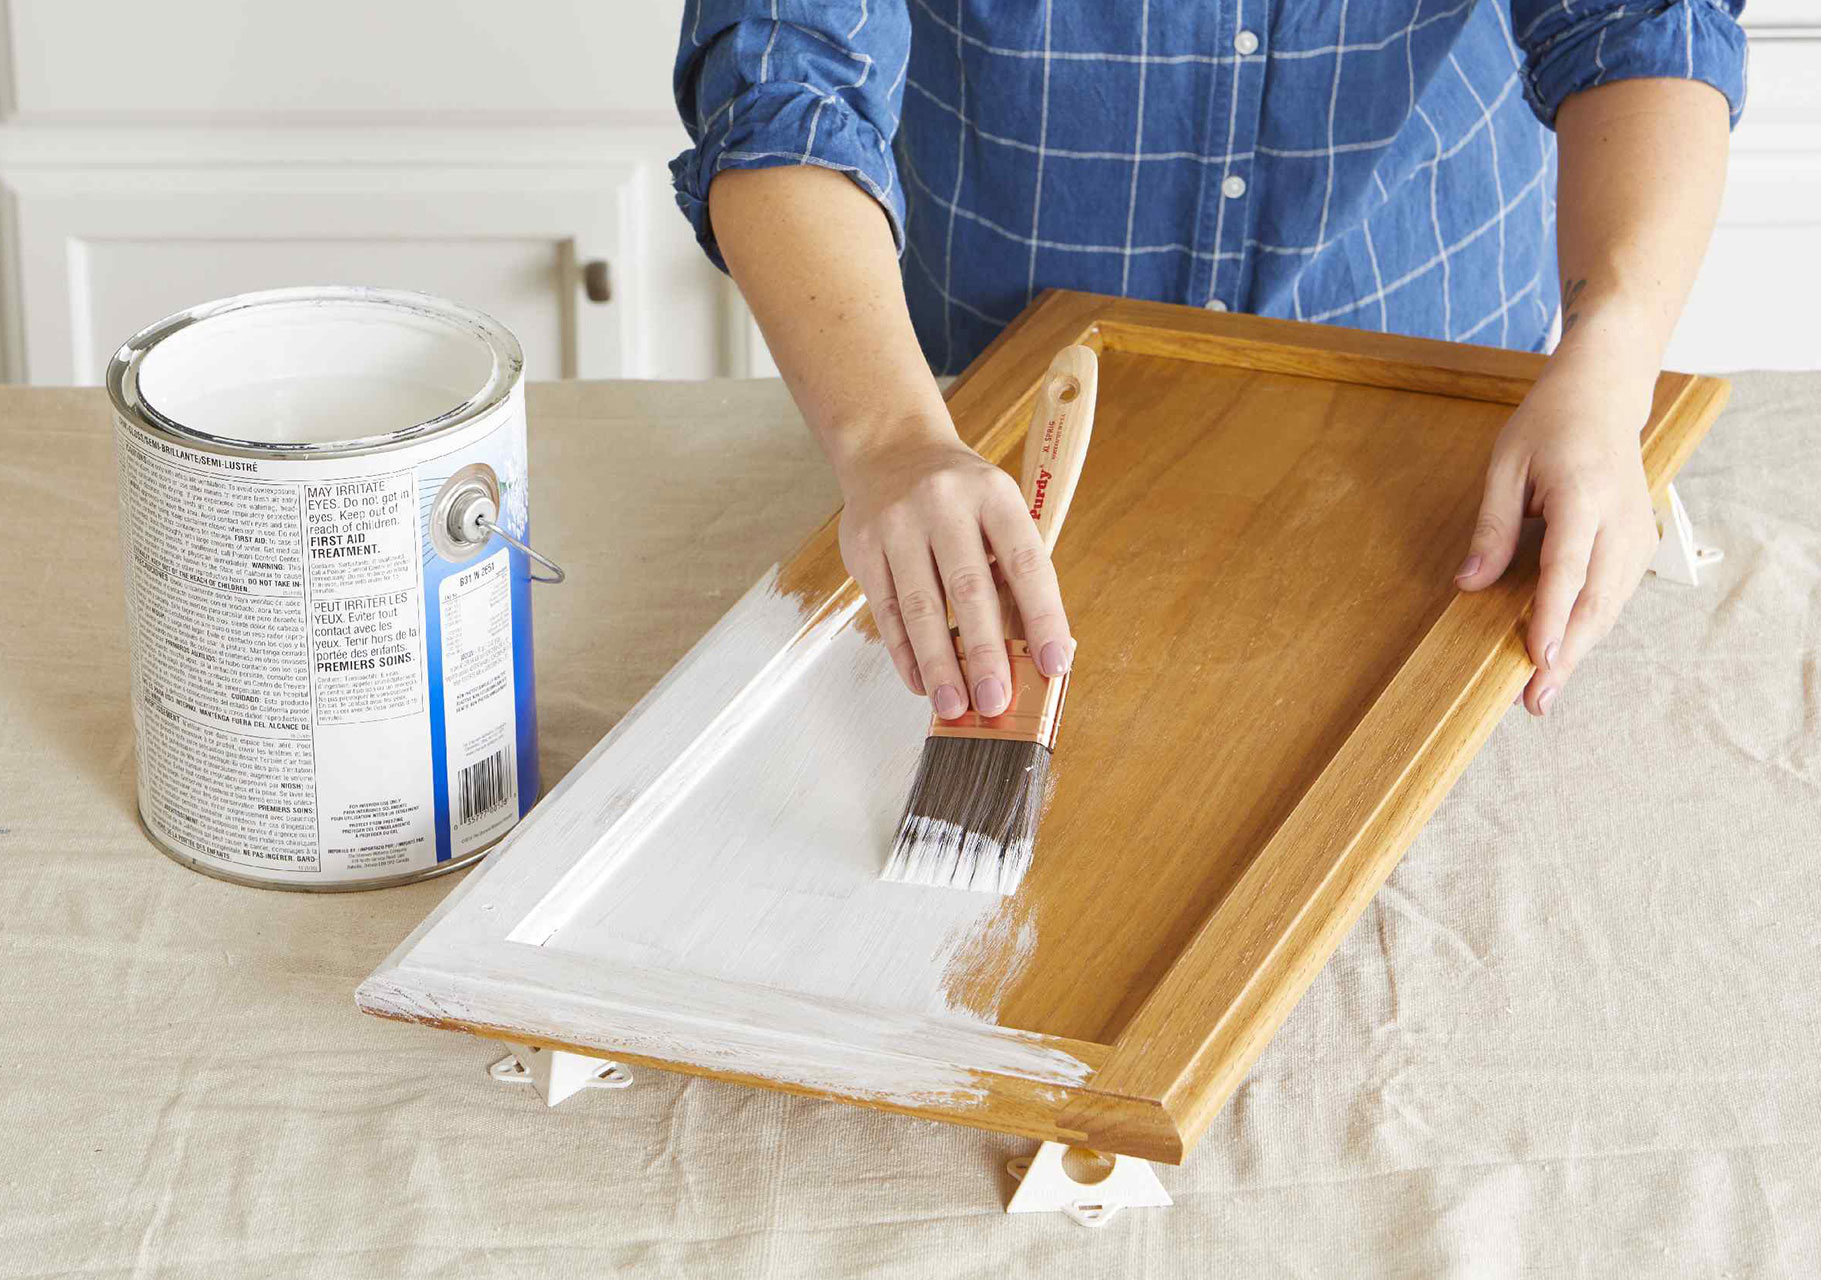 Primer repainting stained wood (How to do it properly)